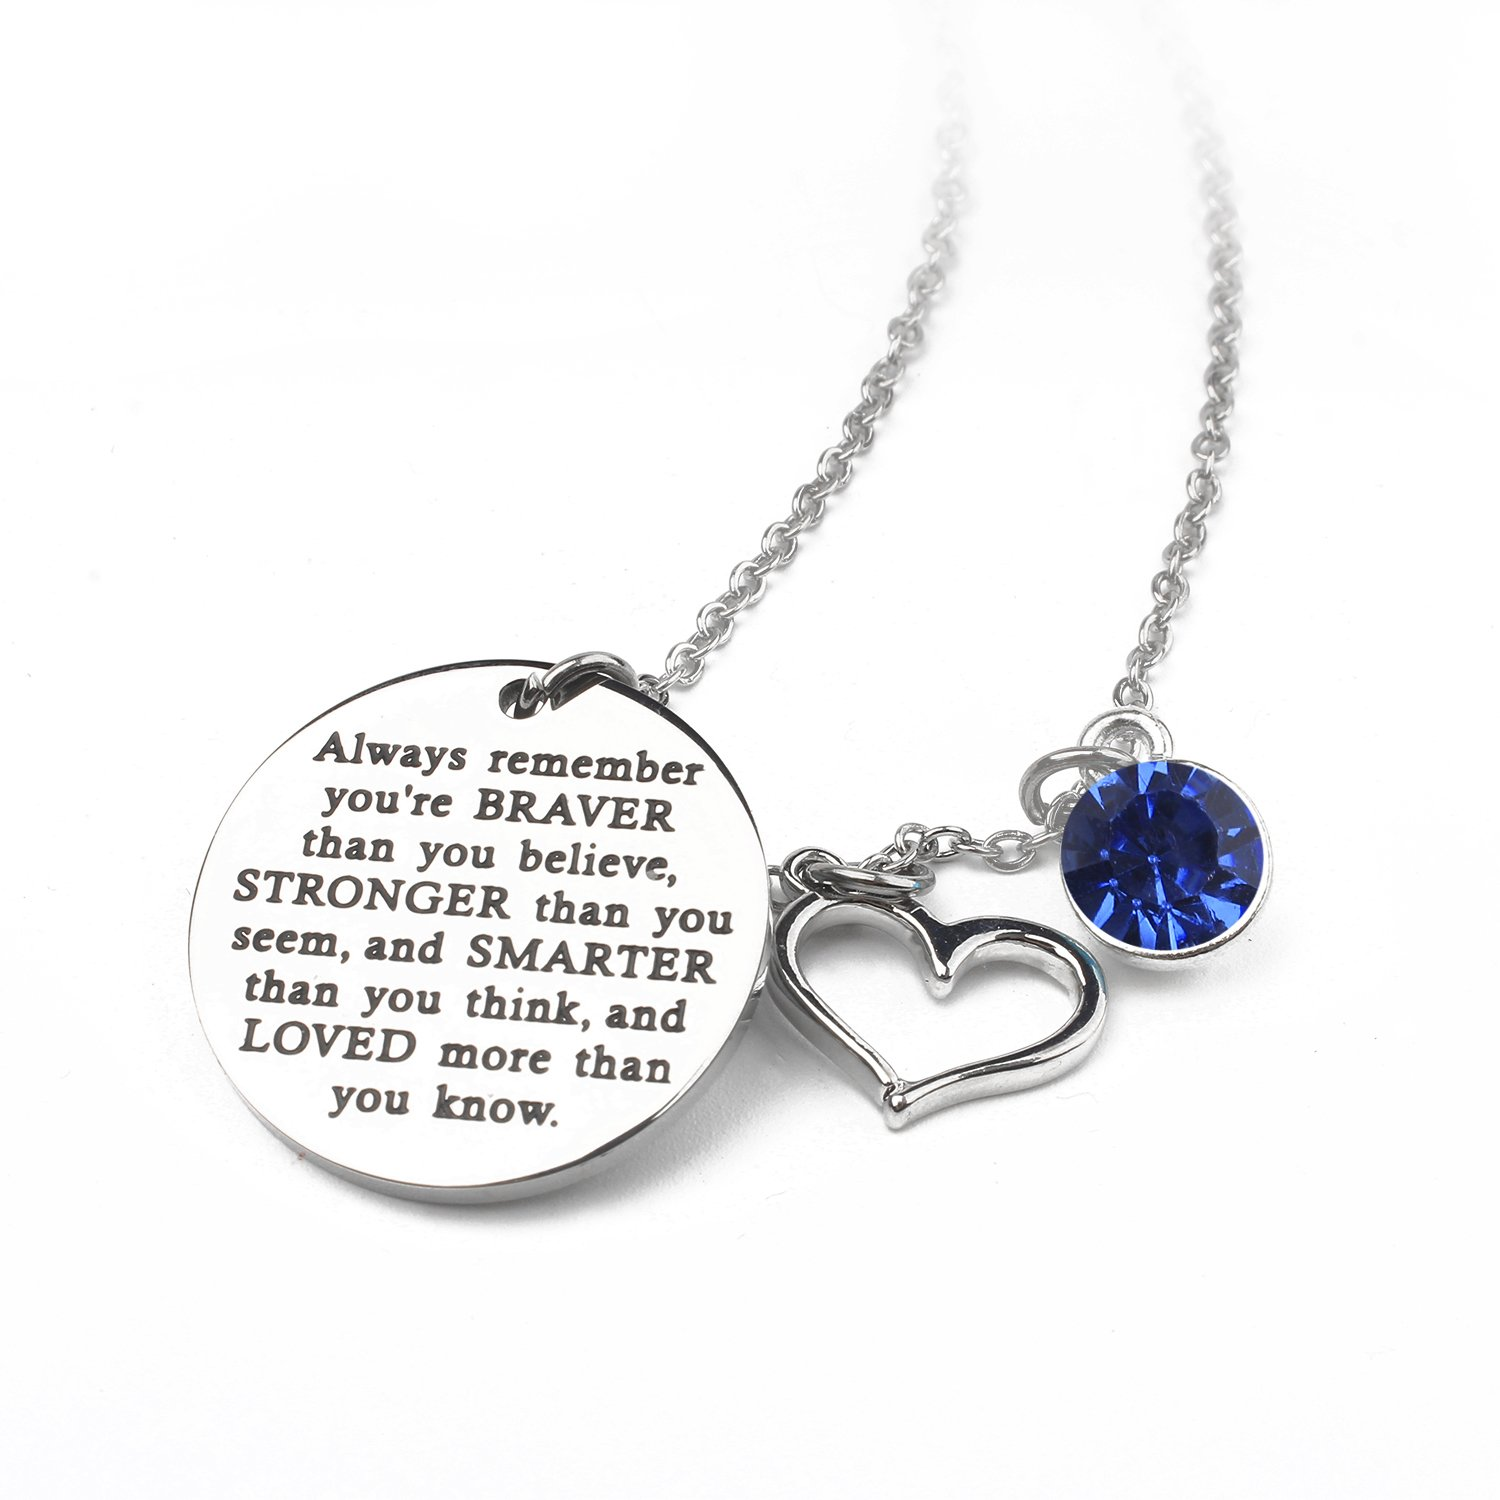 Zaoming You Are Braver Than You Believe Inspirational Necklace With Birthstone Graduation Gift Best Friend Encouragement Gifts Birthday Gift (09-September Sapphire)